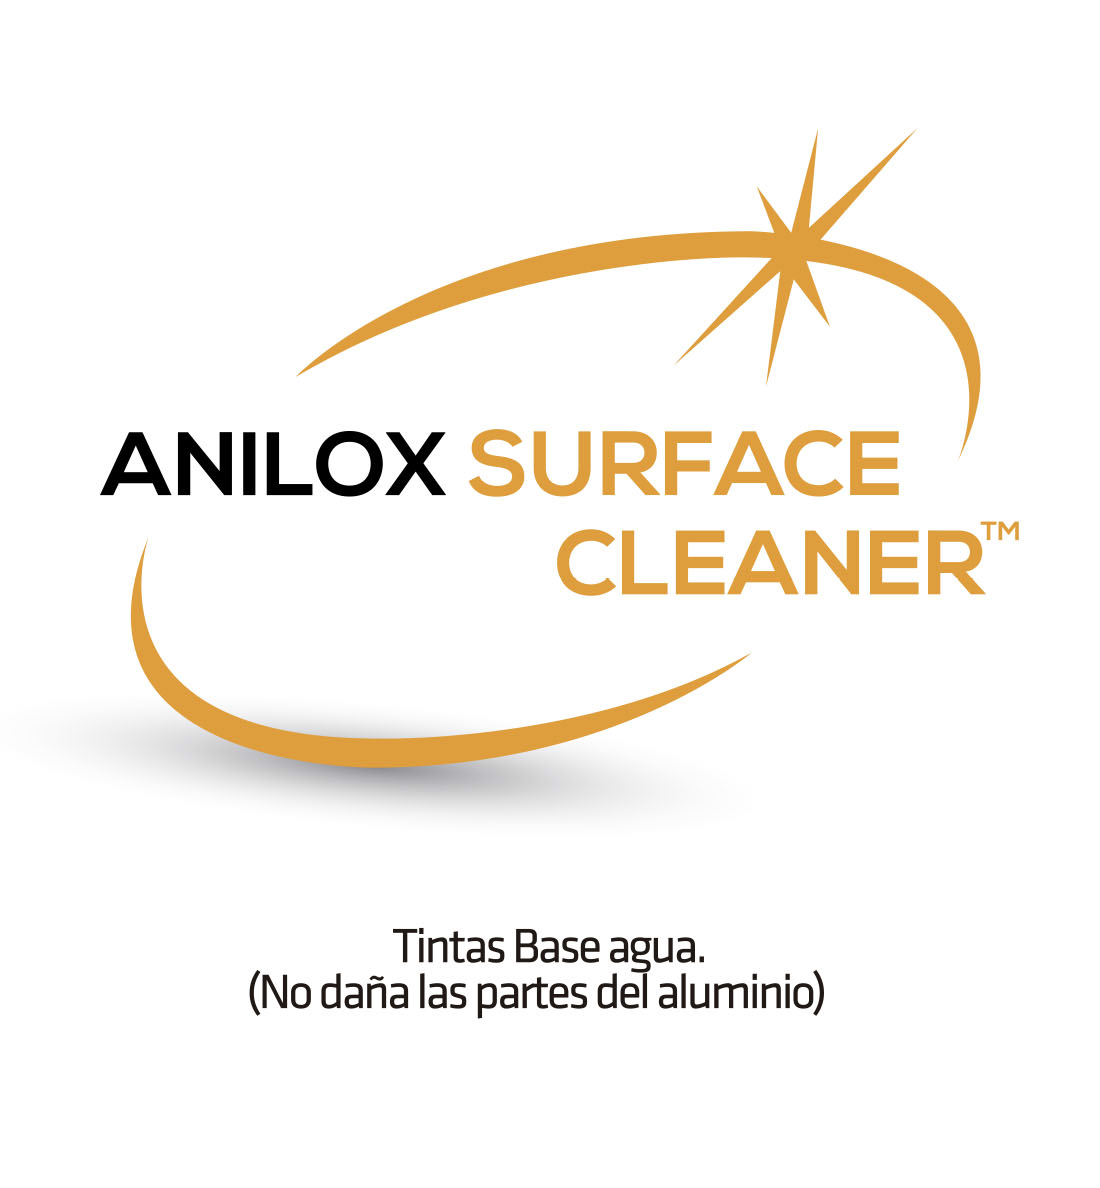 Anilox surface cleaner